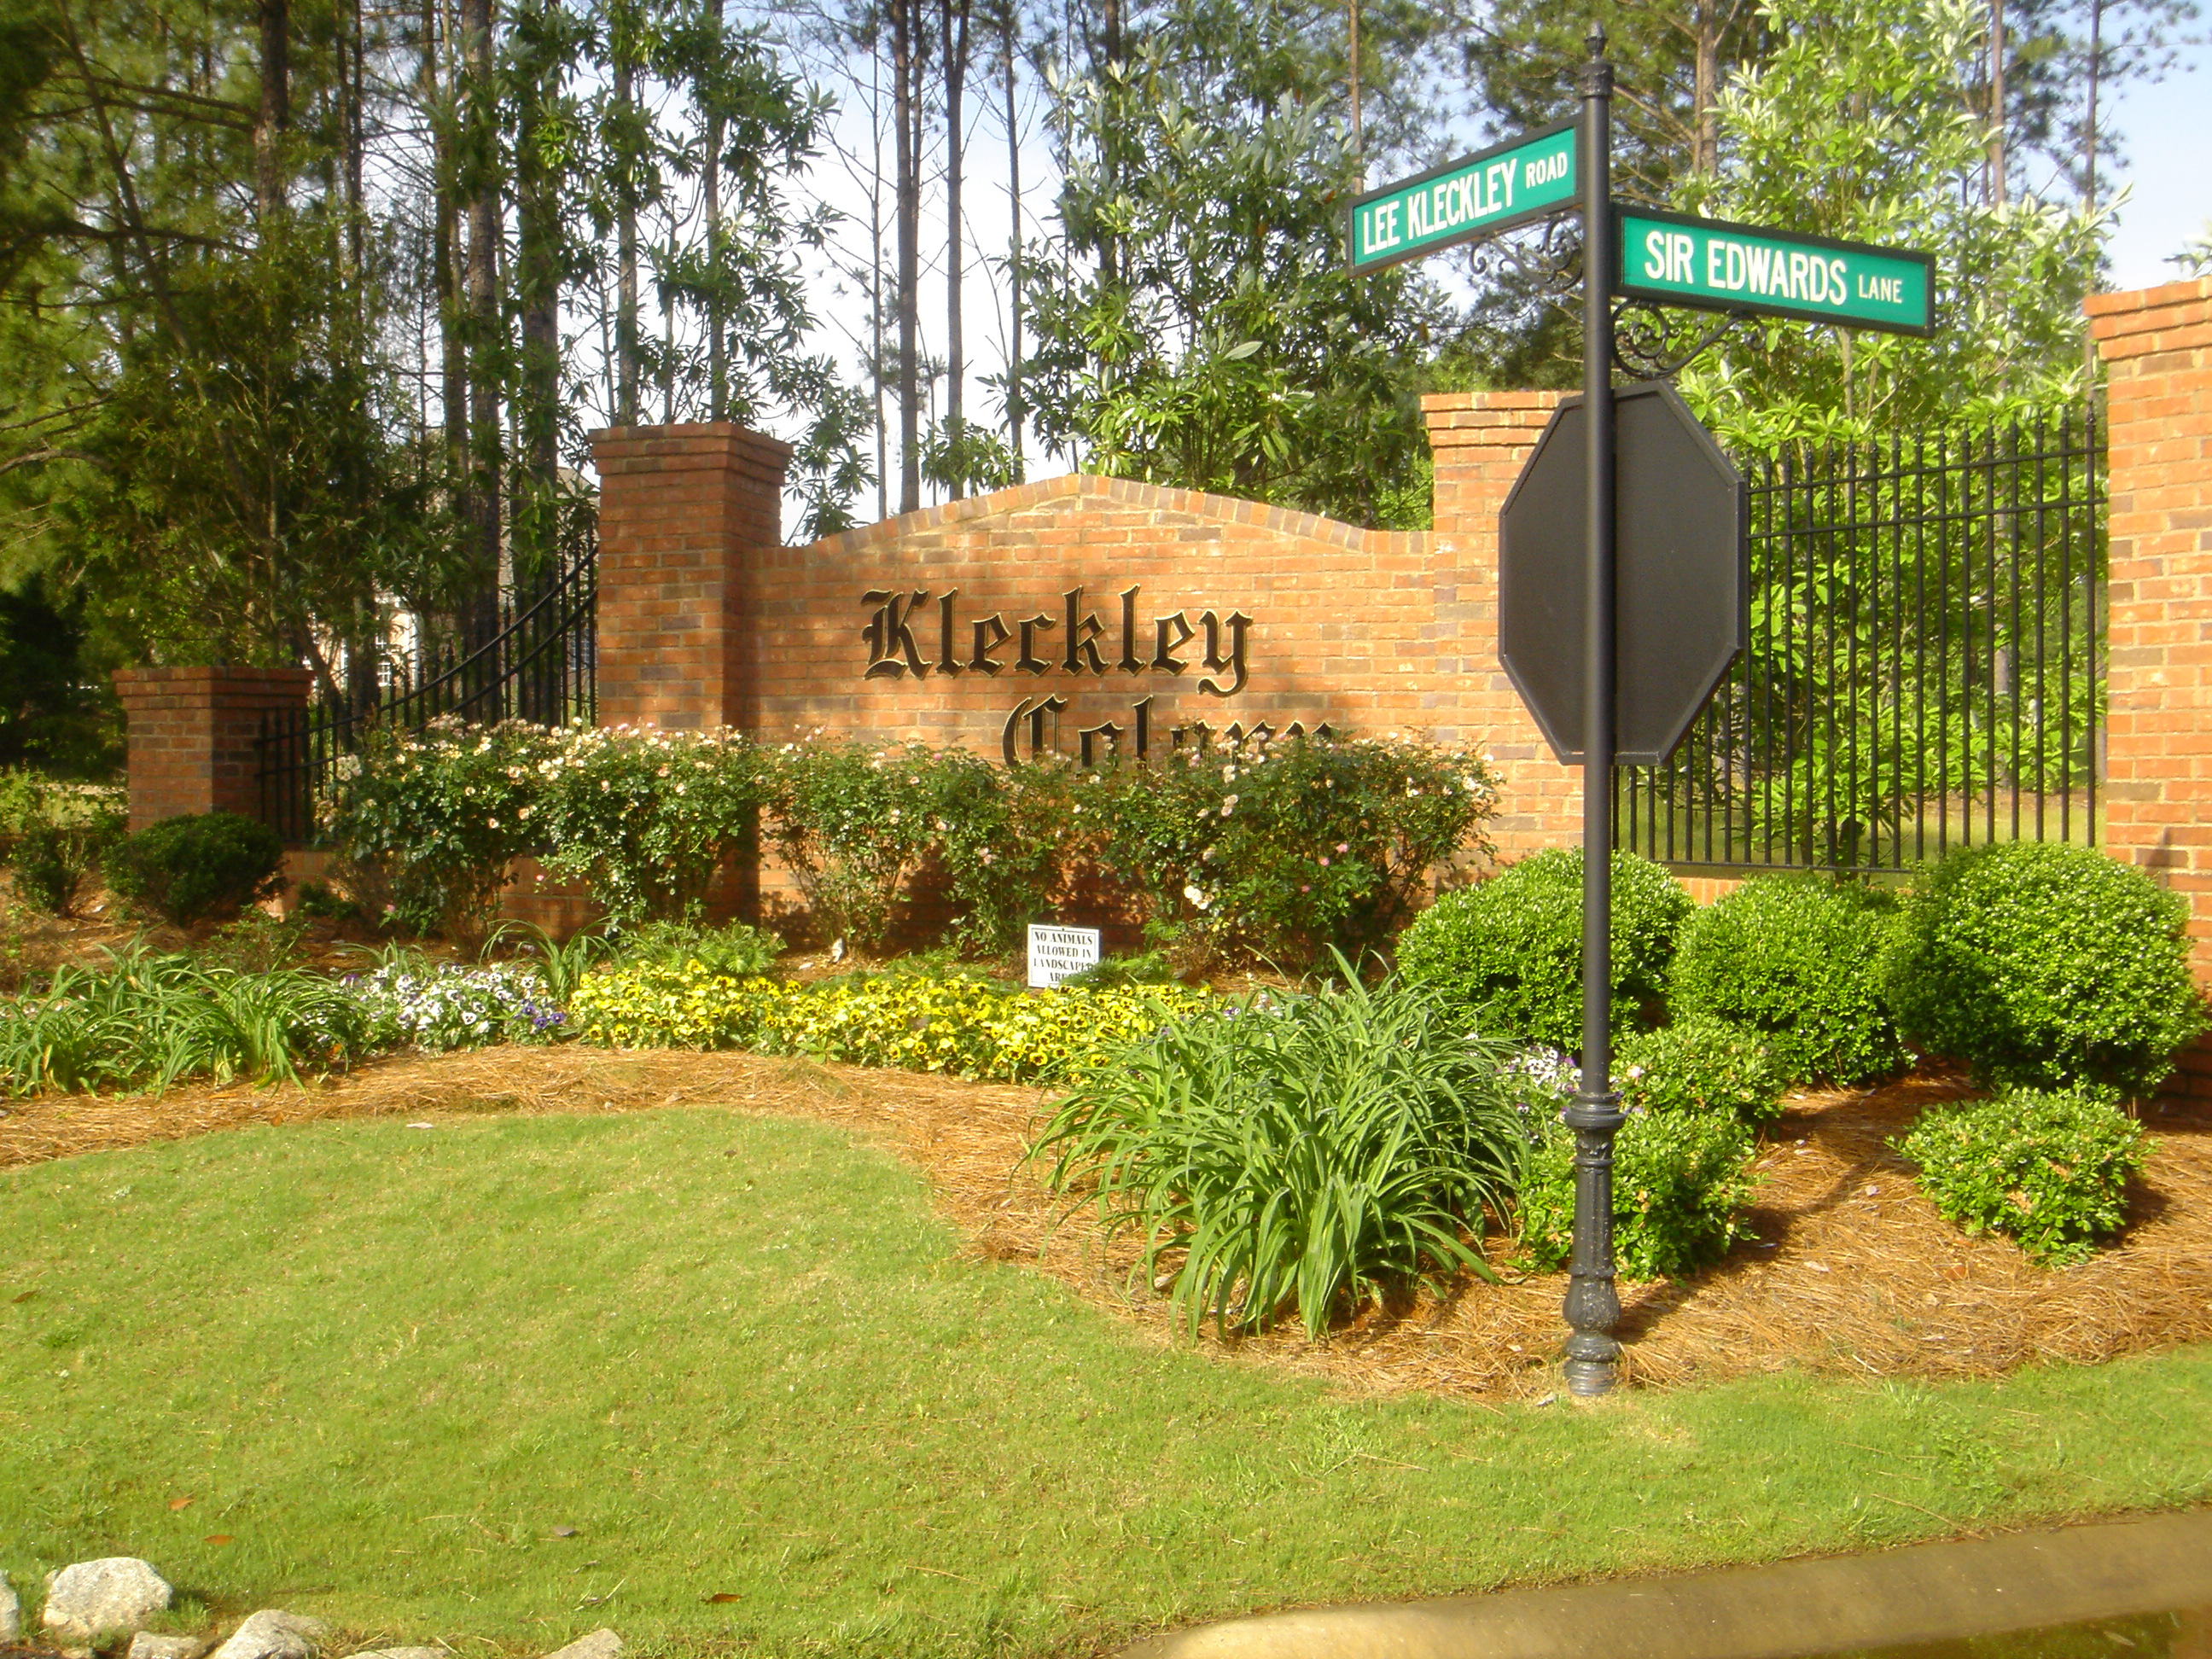 Jason Compton is now in charge of Marketing and the homes for sale in Kleckley Colony in Lexington SC